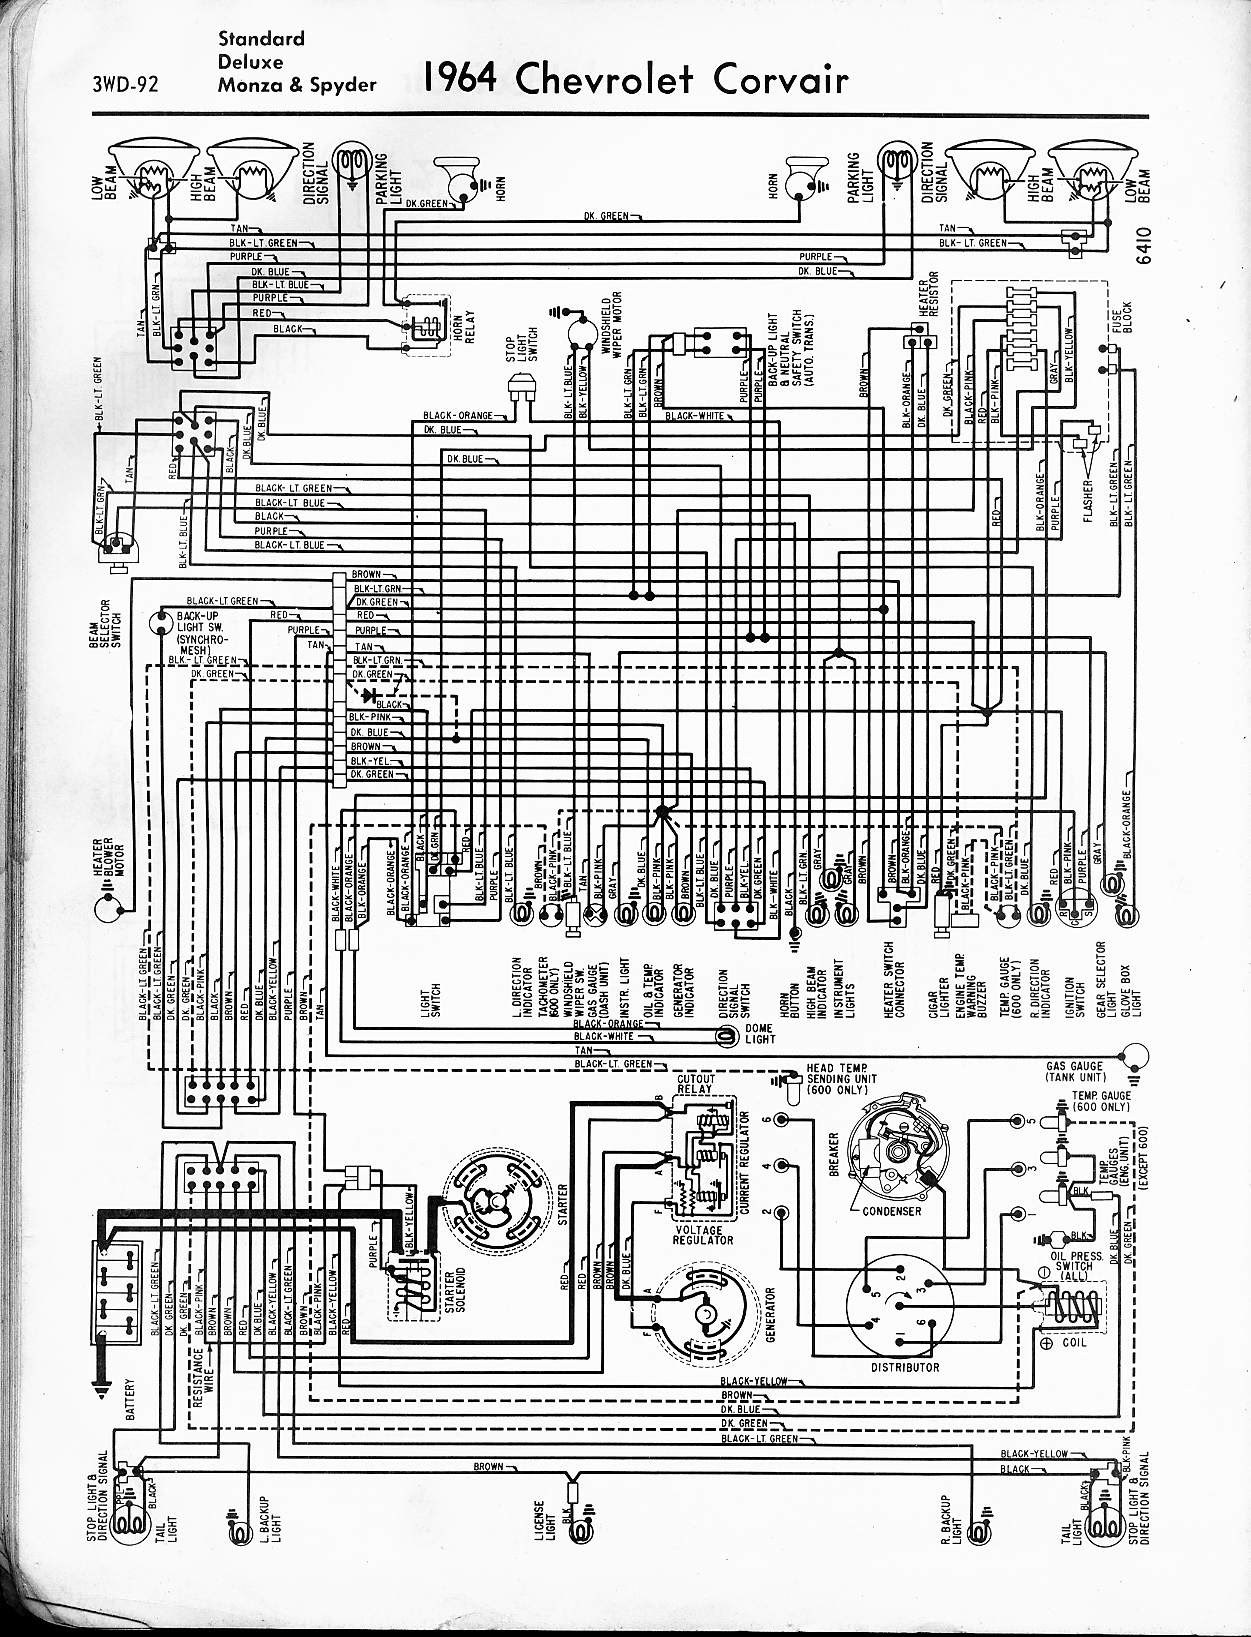 1964 Chevy El Camino Wiring Diagram 8n 12 Volt Wiring Diagram For Wiring Diagram Schematics